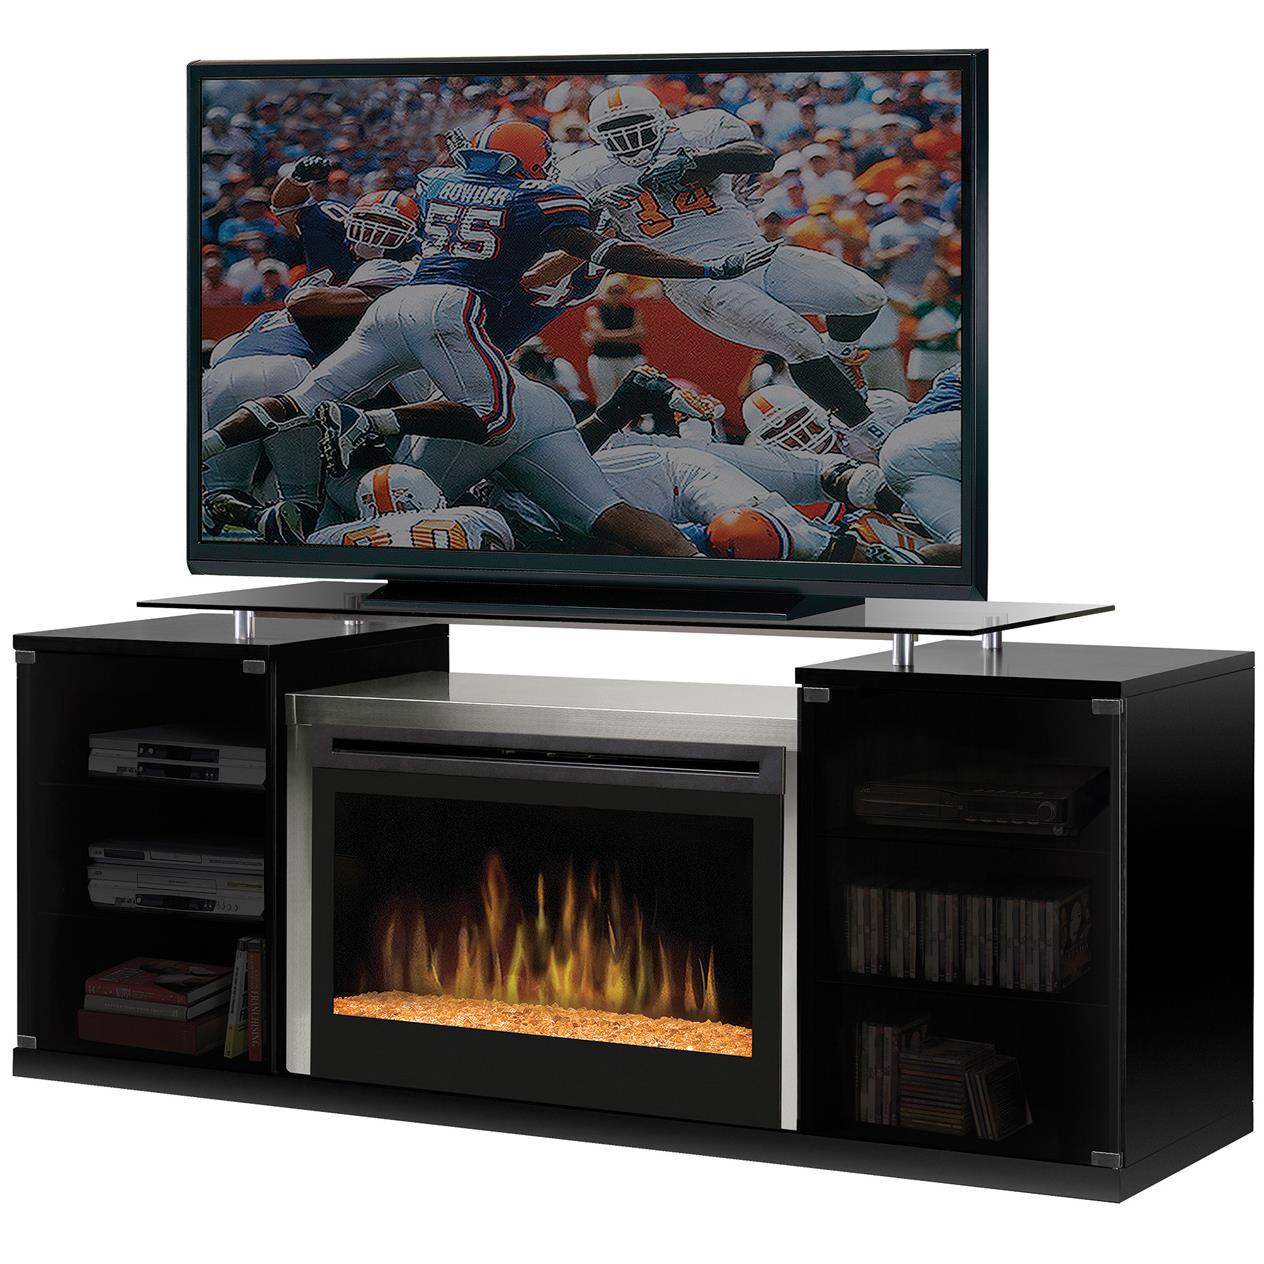 Media Console Fireplaces Marana Media Console Electrical Fireplace by Dimplex at Nassau Furniture and Mattress